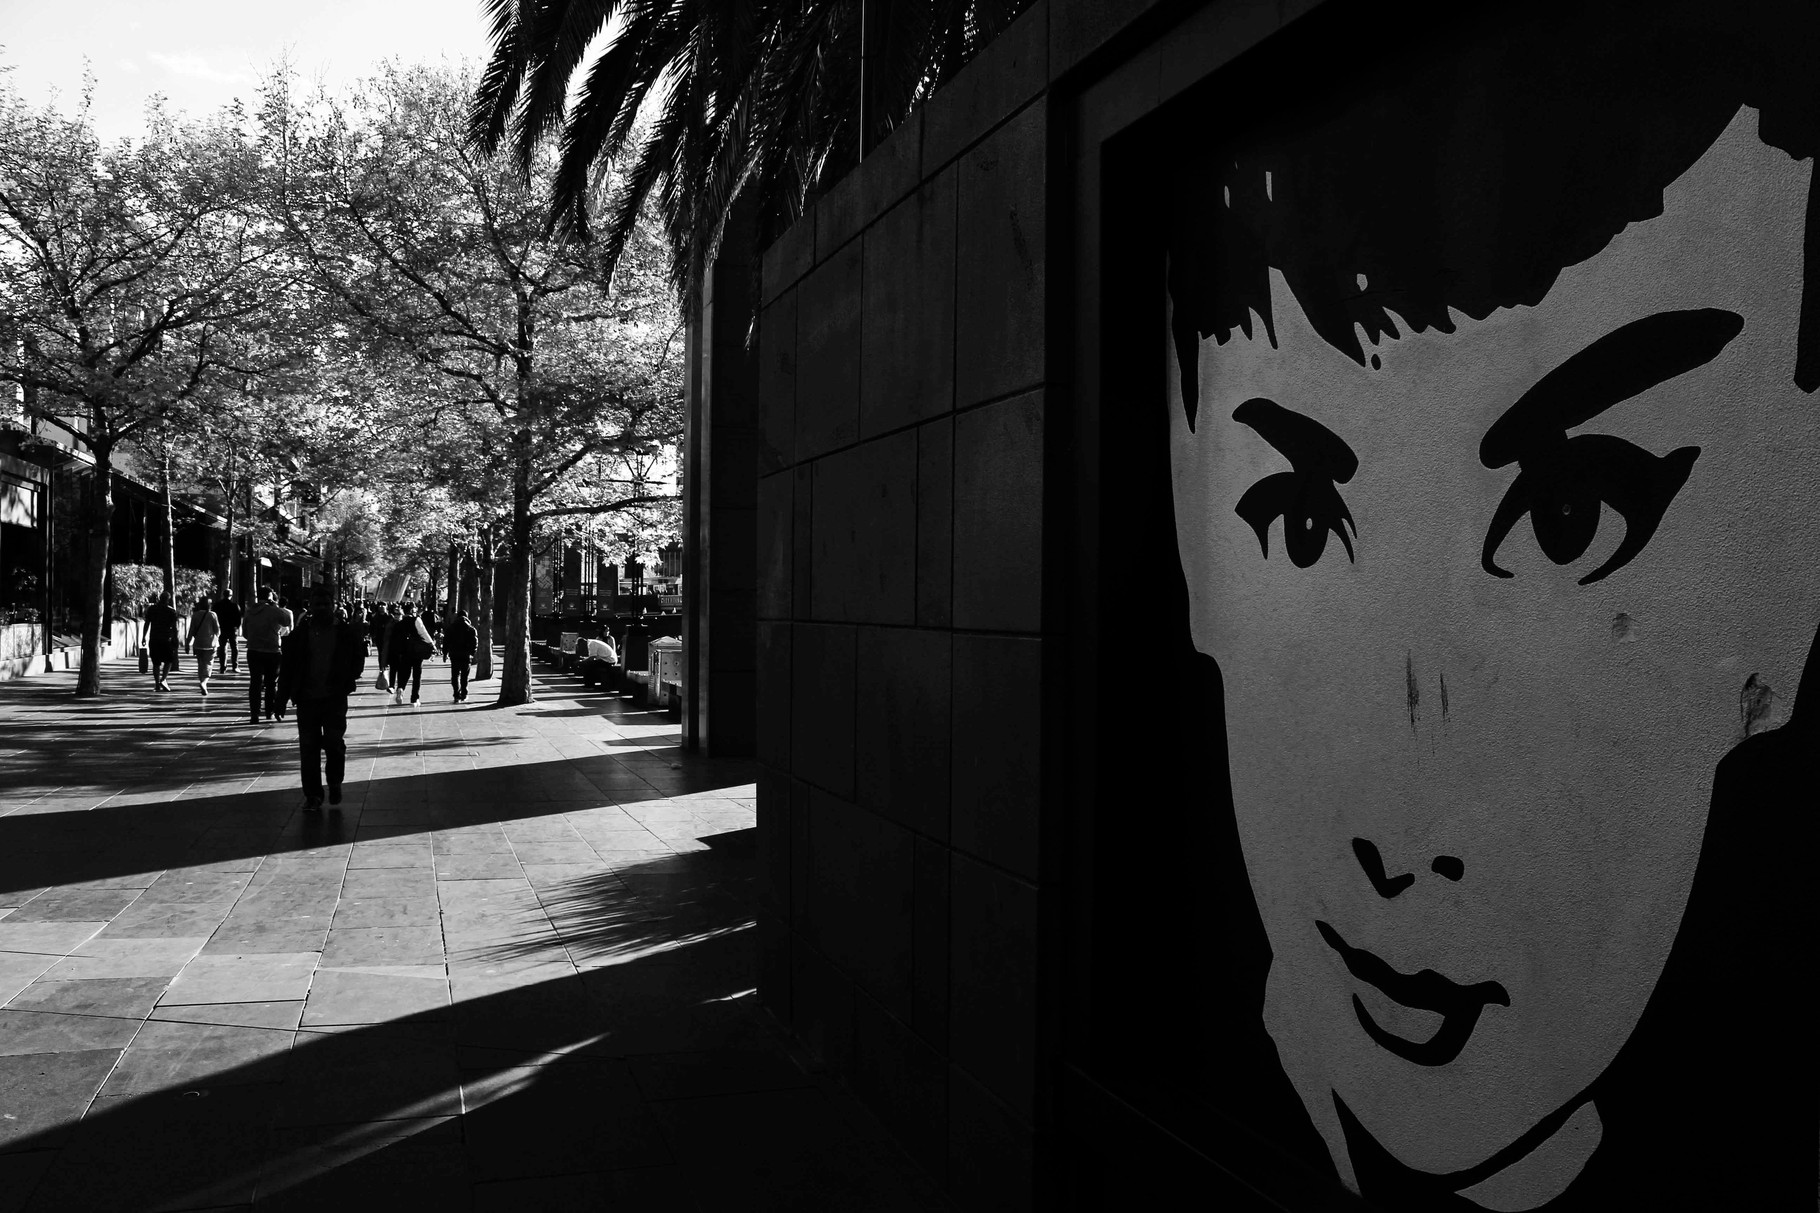 Audrey Hepburn setting the scene on Melbourne's Southbank- October 2015